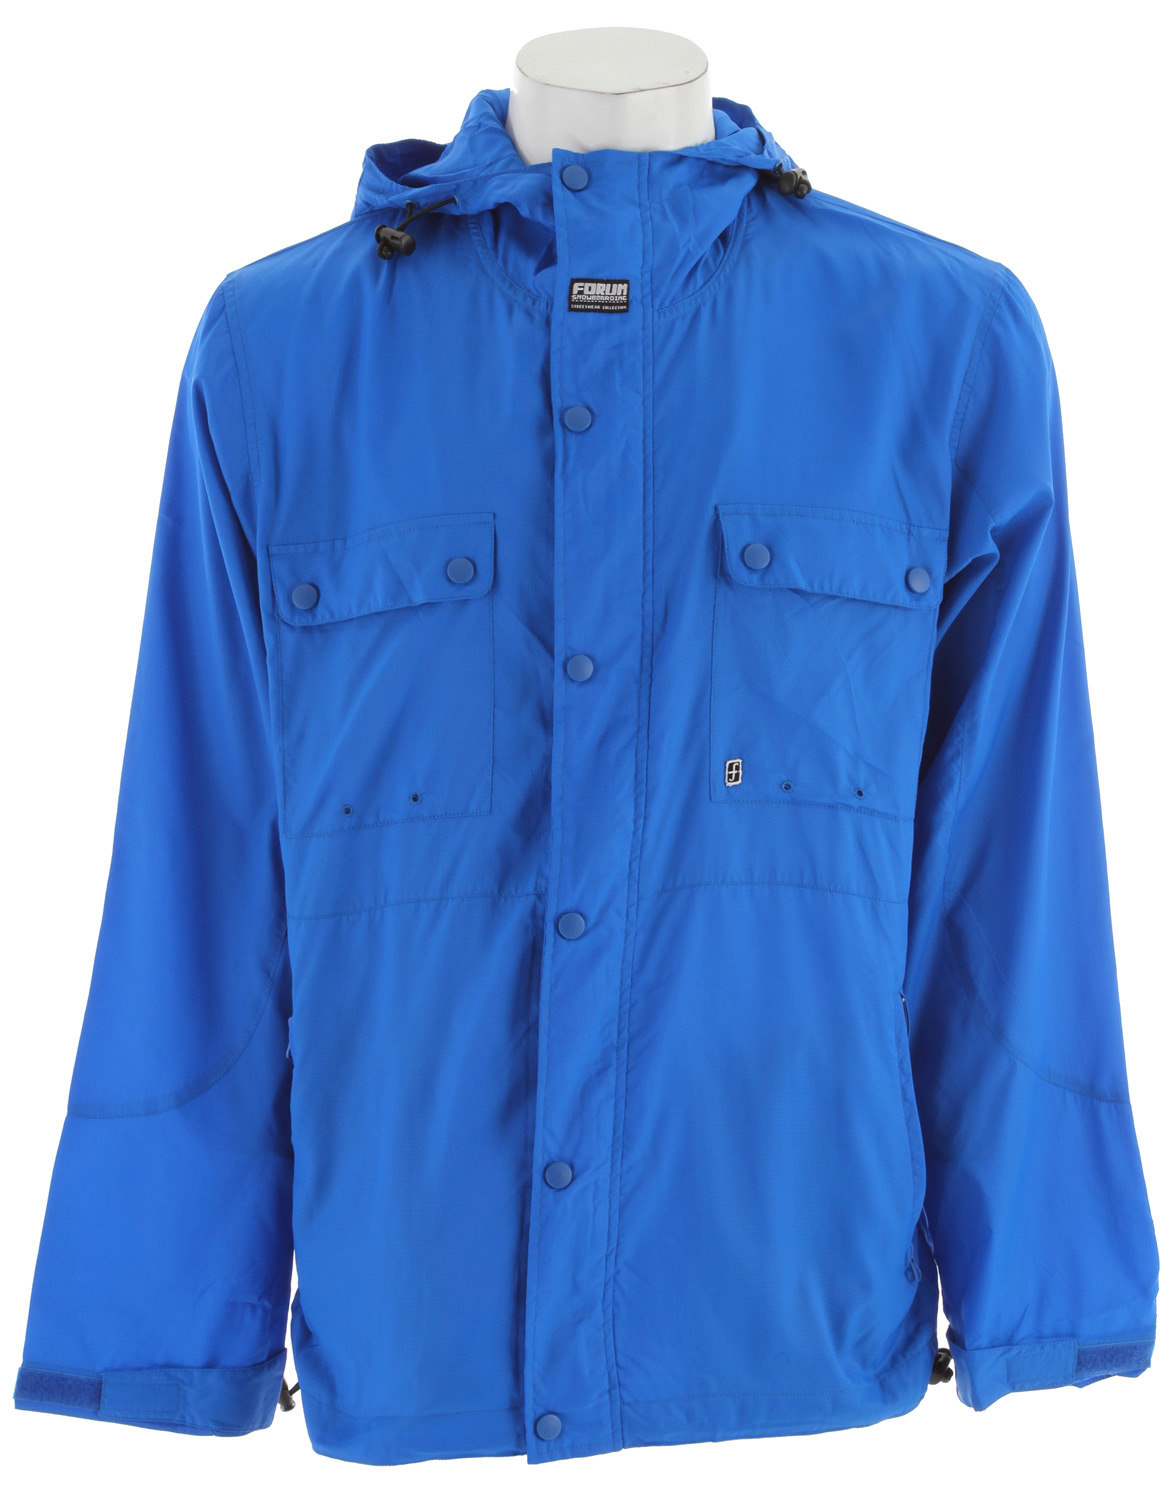 Forum Packy Windbreaker Blue - $31.88